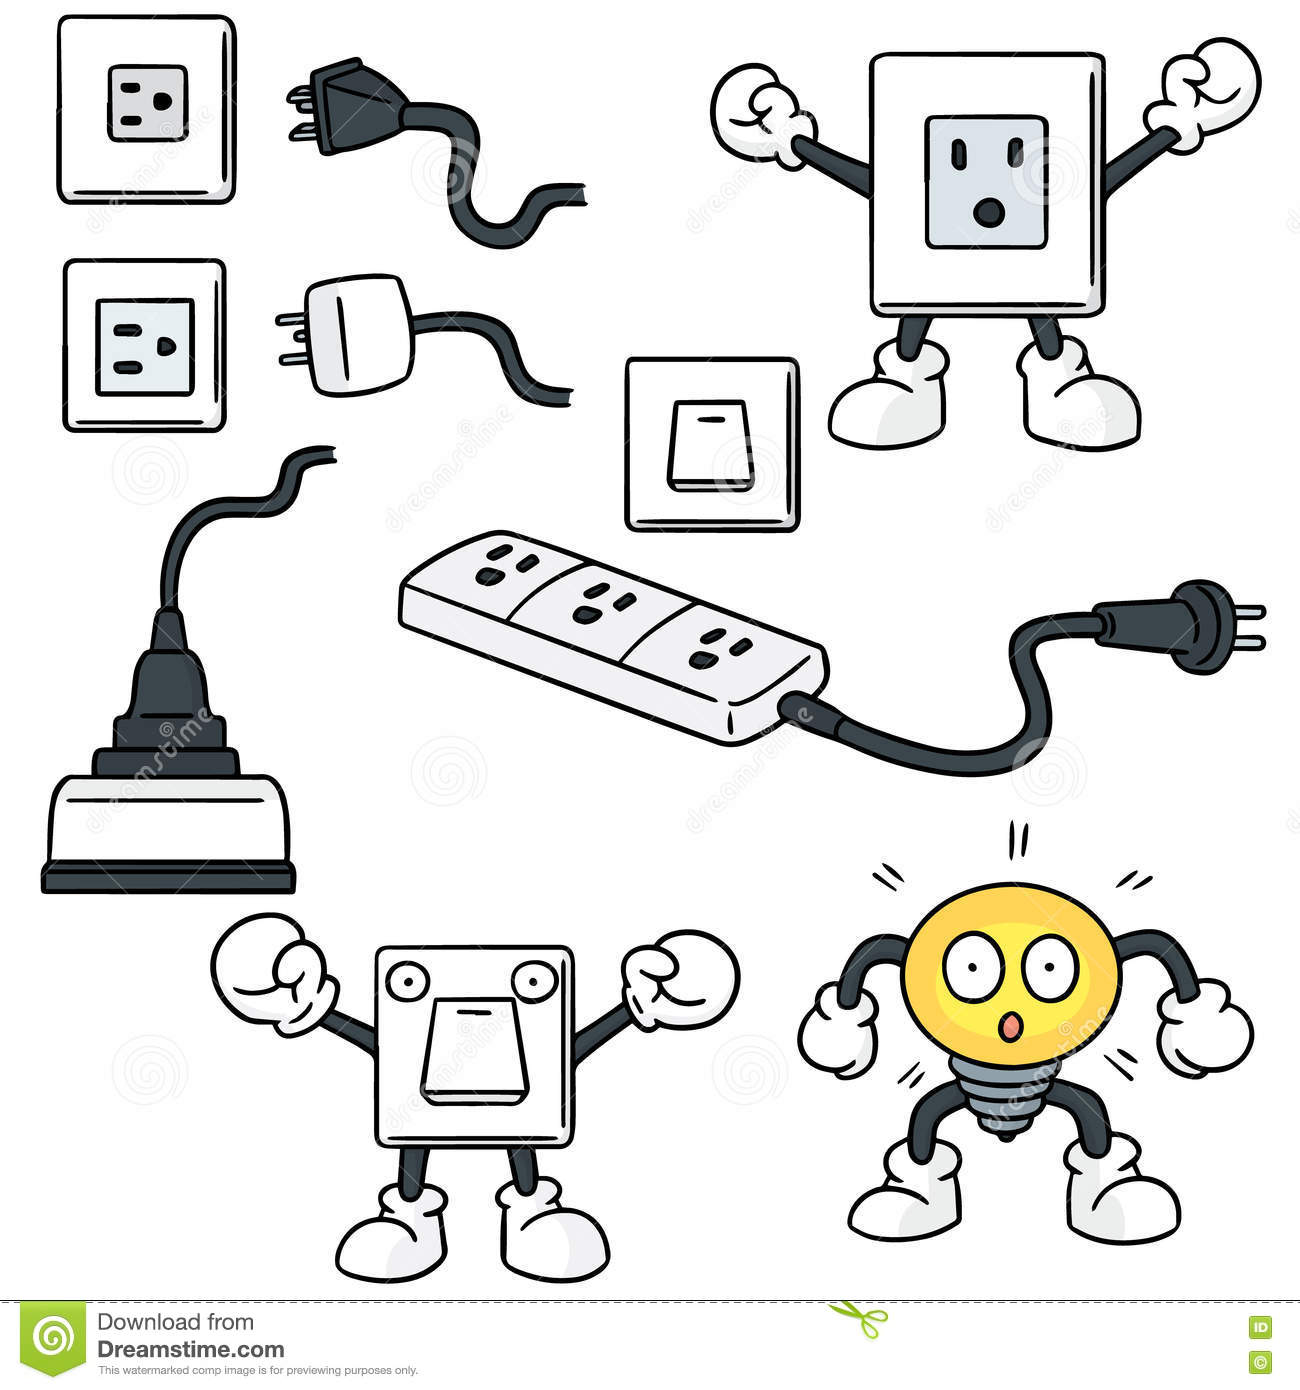 Electric Switch And Plug Stock Vector Illustration Of